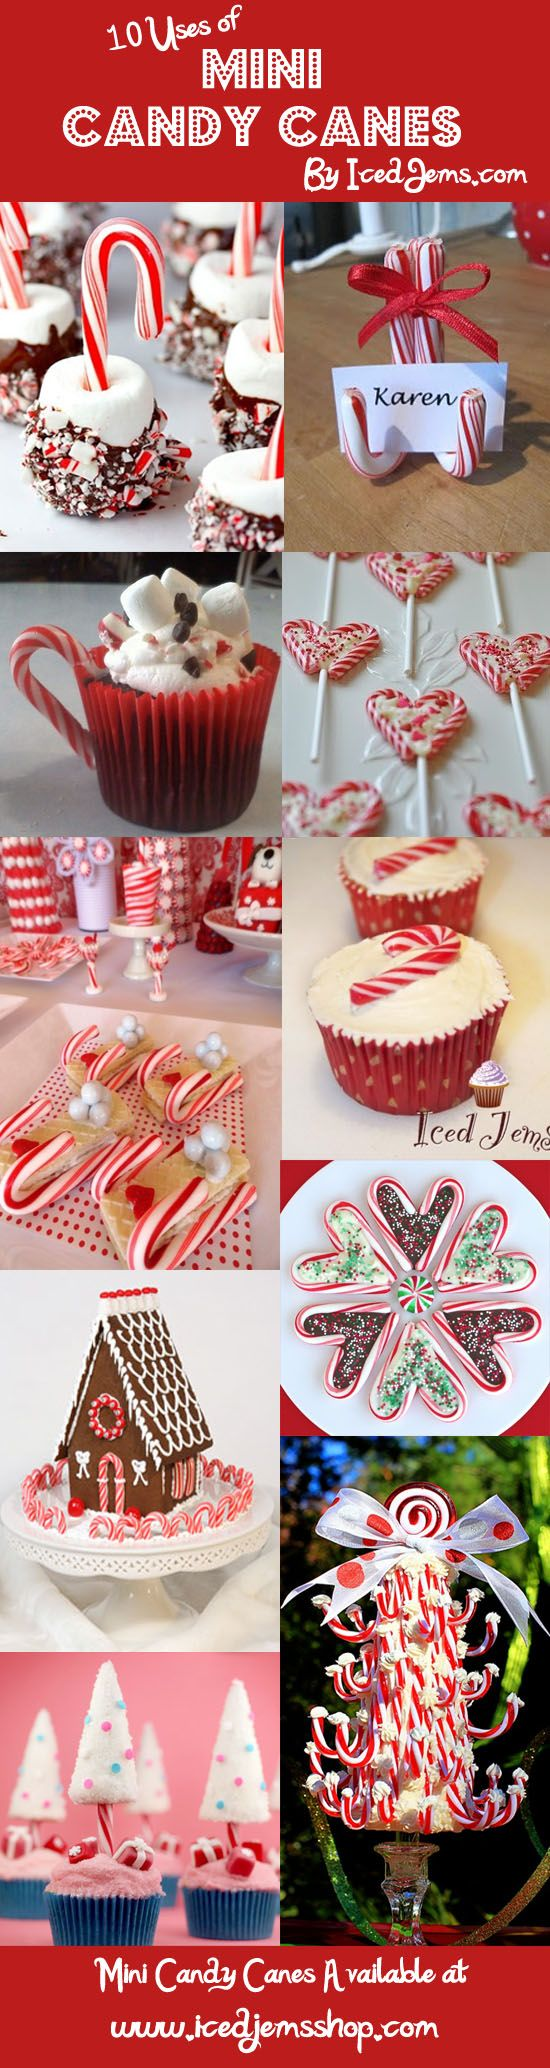 10 Ways to use Mini Candy Canes - love the place card holders